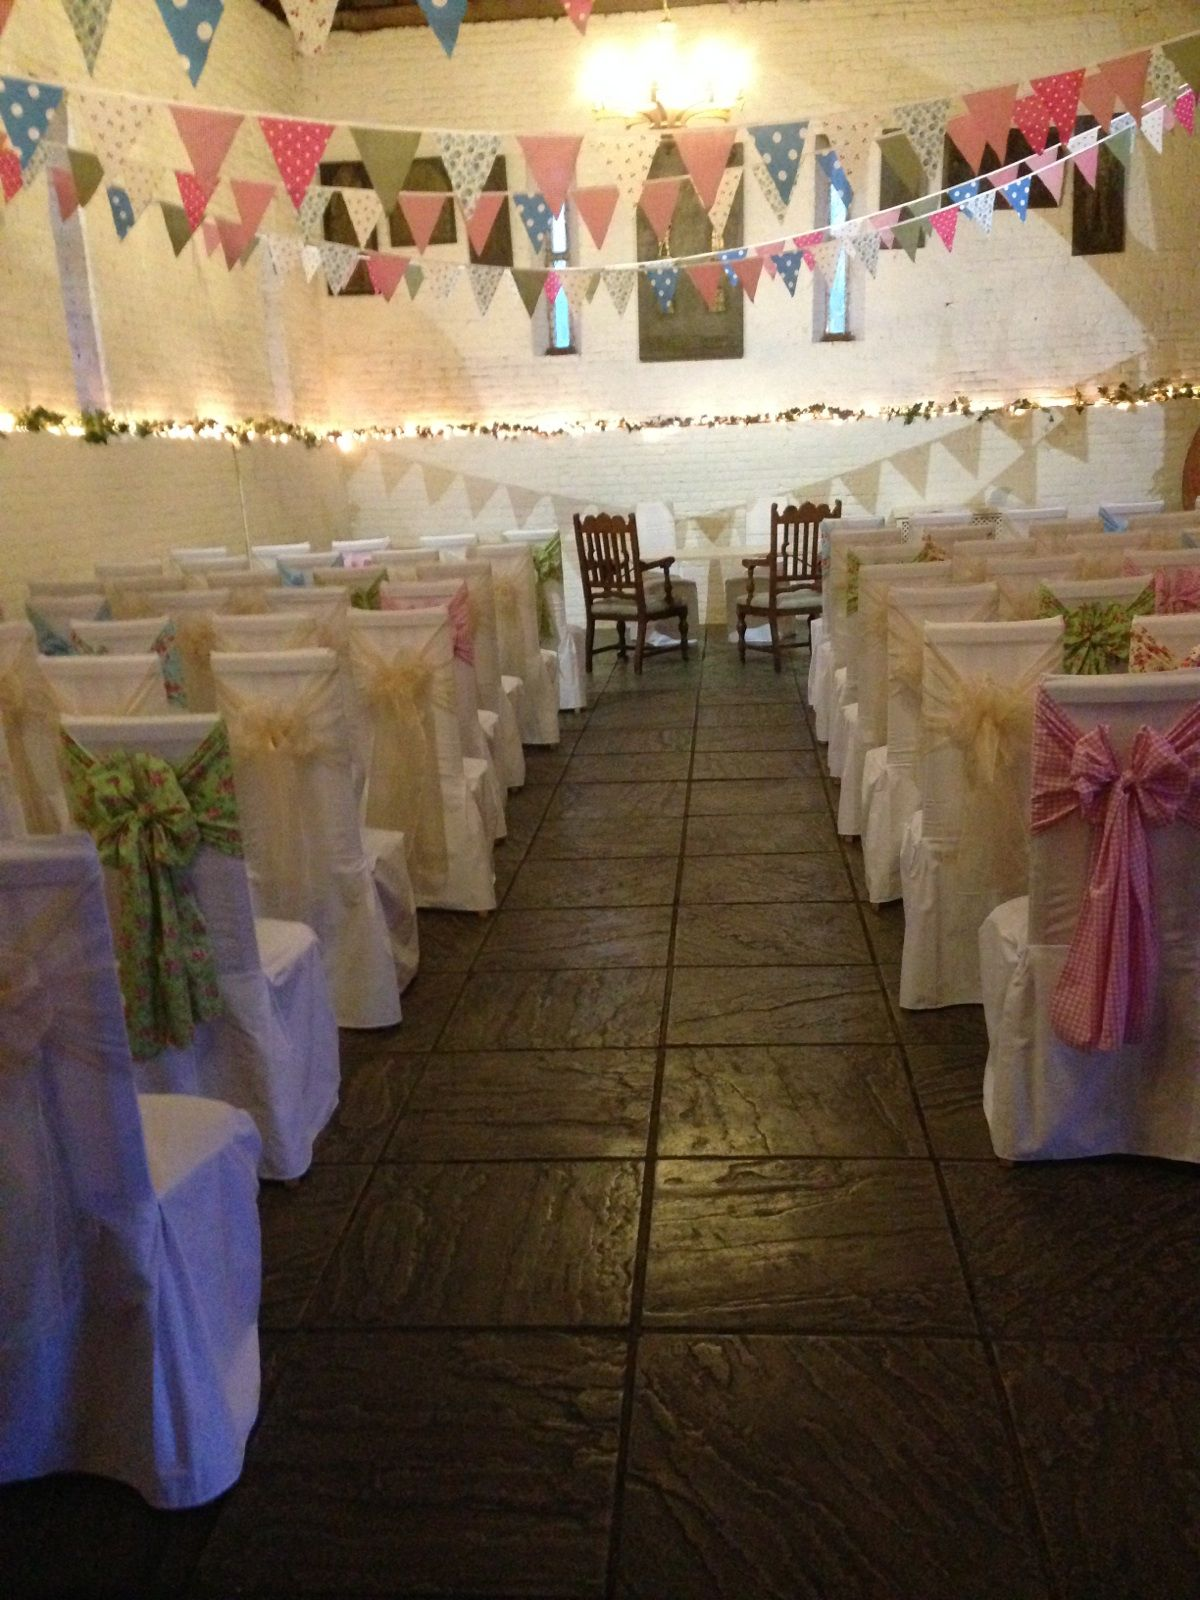 White Cotton Chair Covers With Fl And Ivory Sashes At Ufton Court